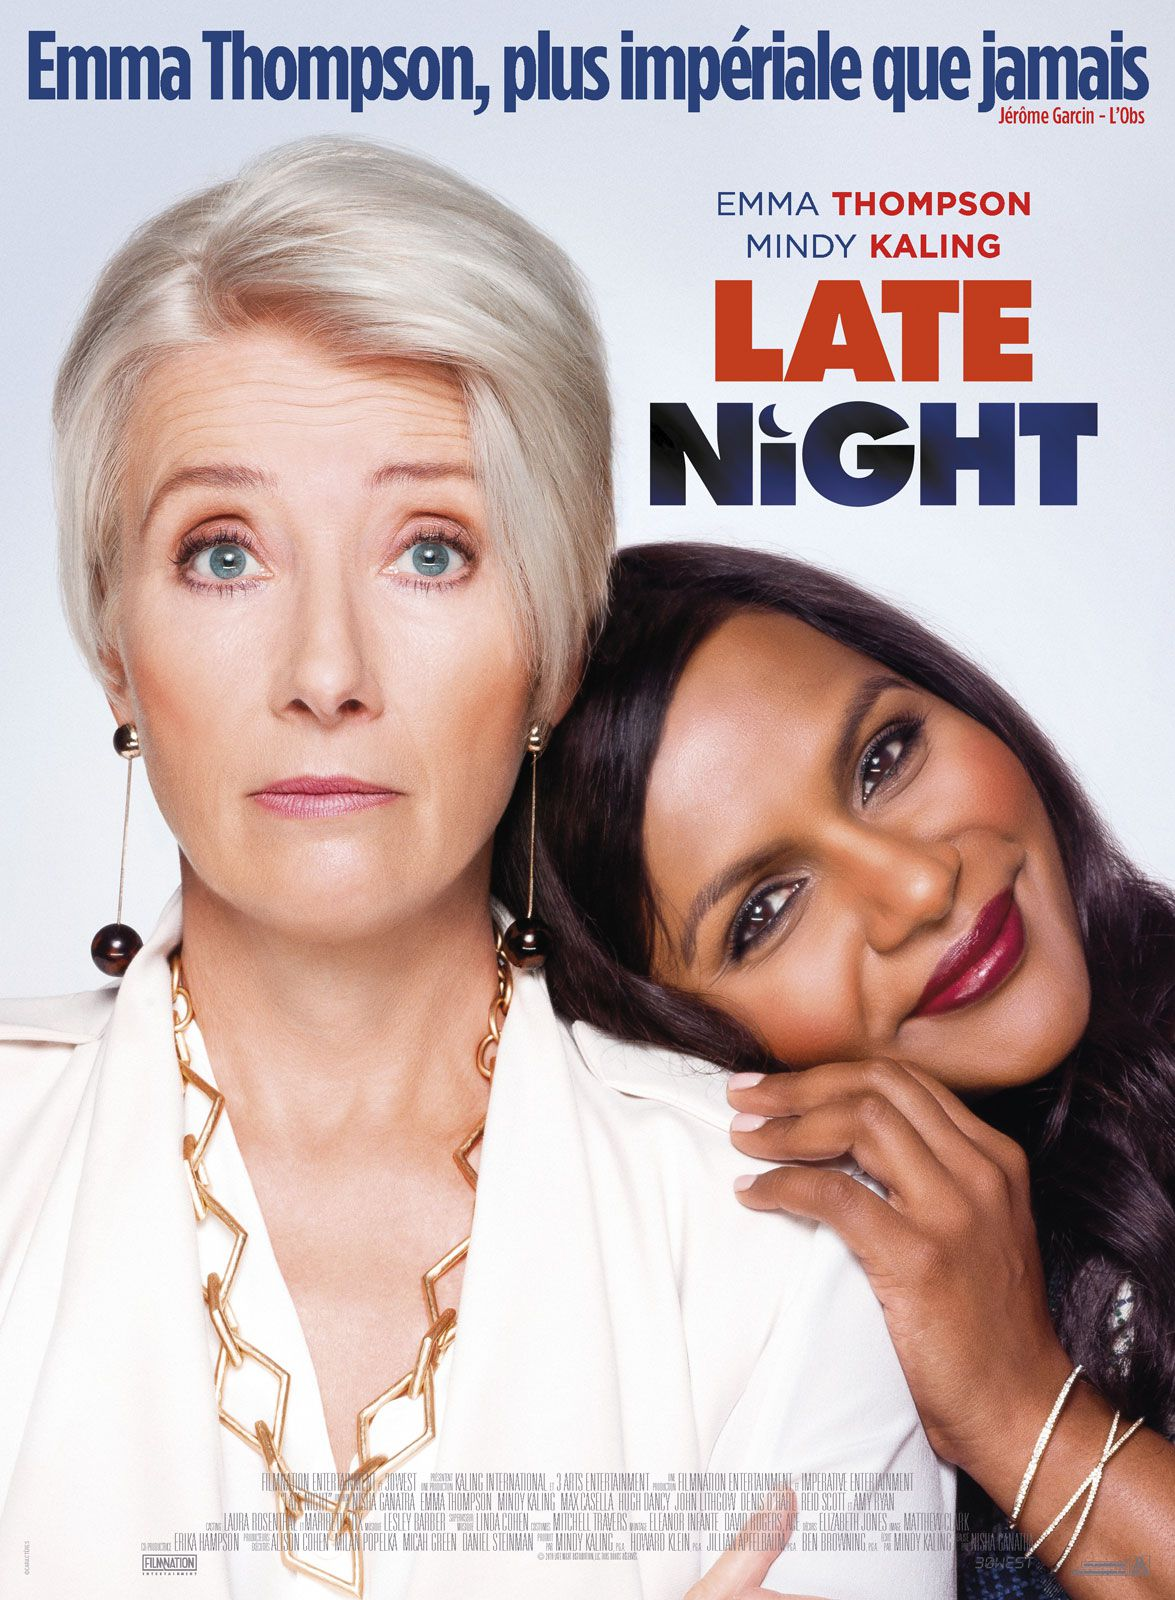 Late Night - Film (2019) streaming VF gratuit complet